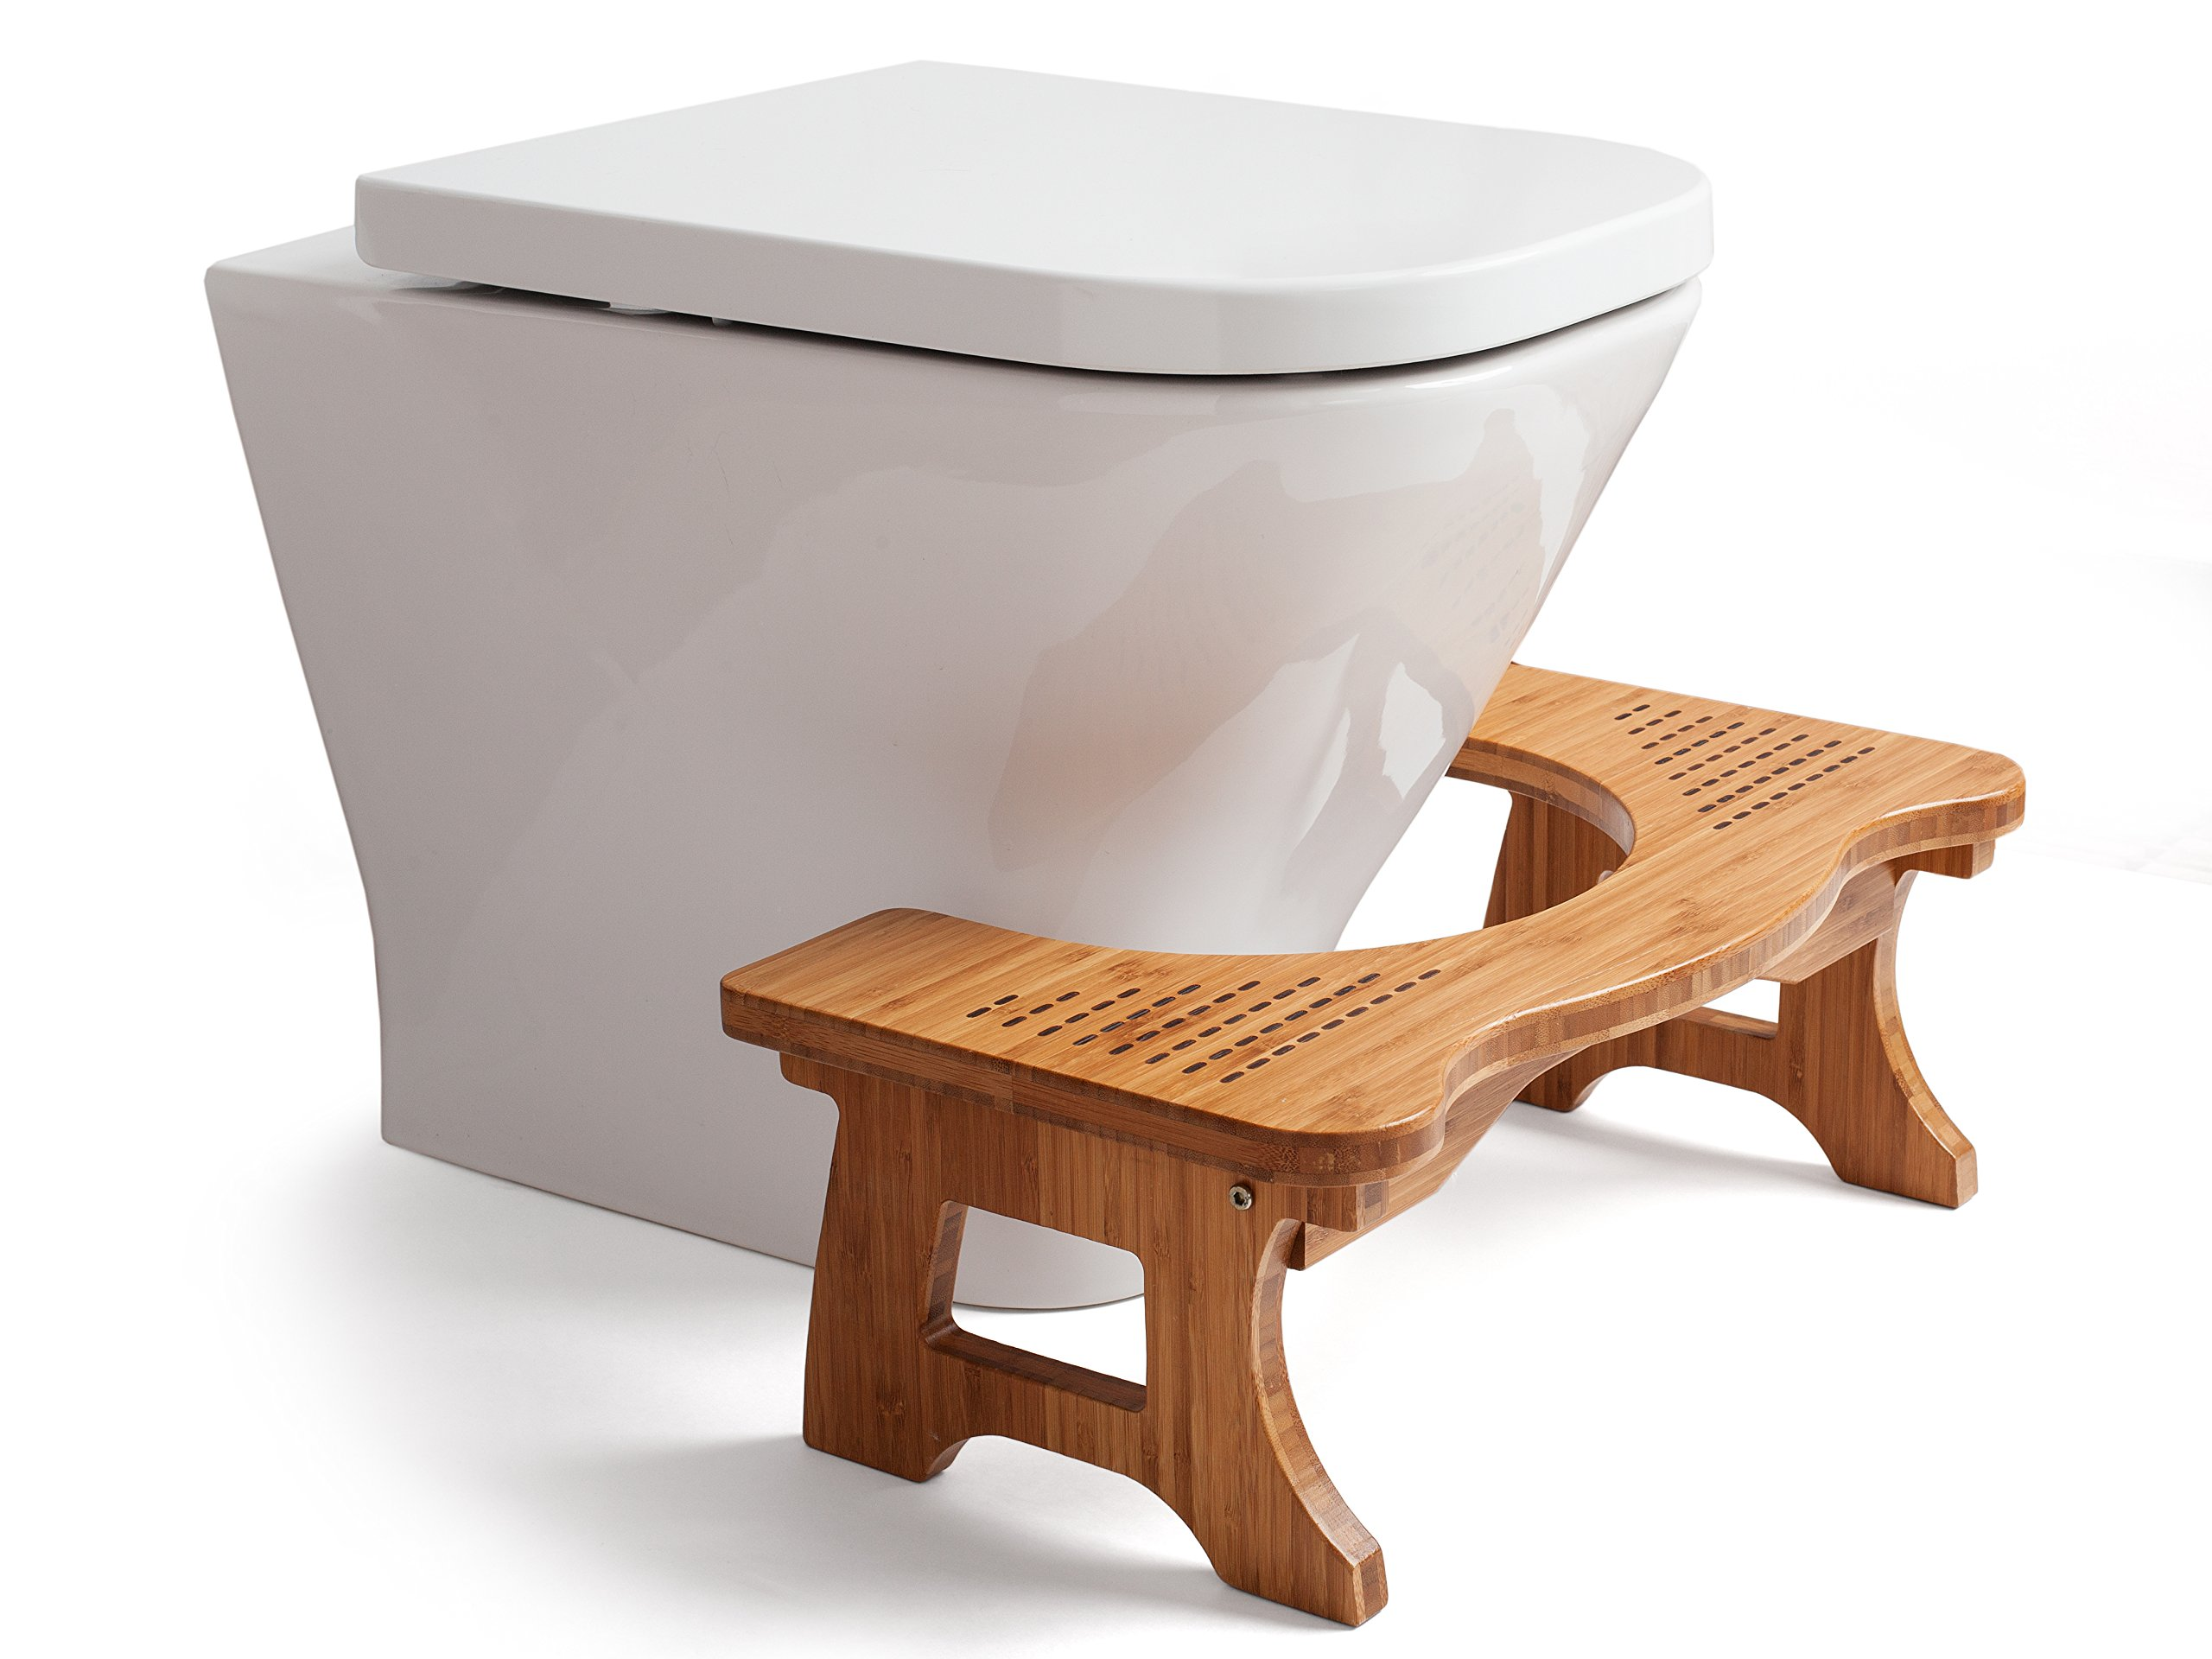 Superieur AA Wood Step Toilet Stool   Bamboo Toilet Chair   Squatting Bathroom Stool    7u201d Luxury Anti Slip Footrest For Adults, Kids Toddlers